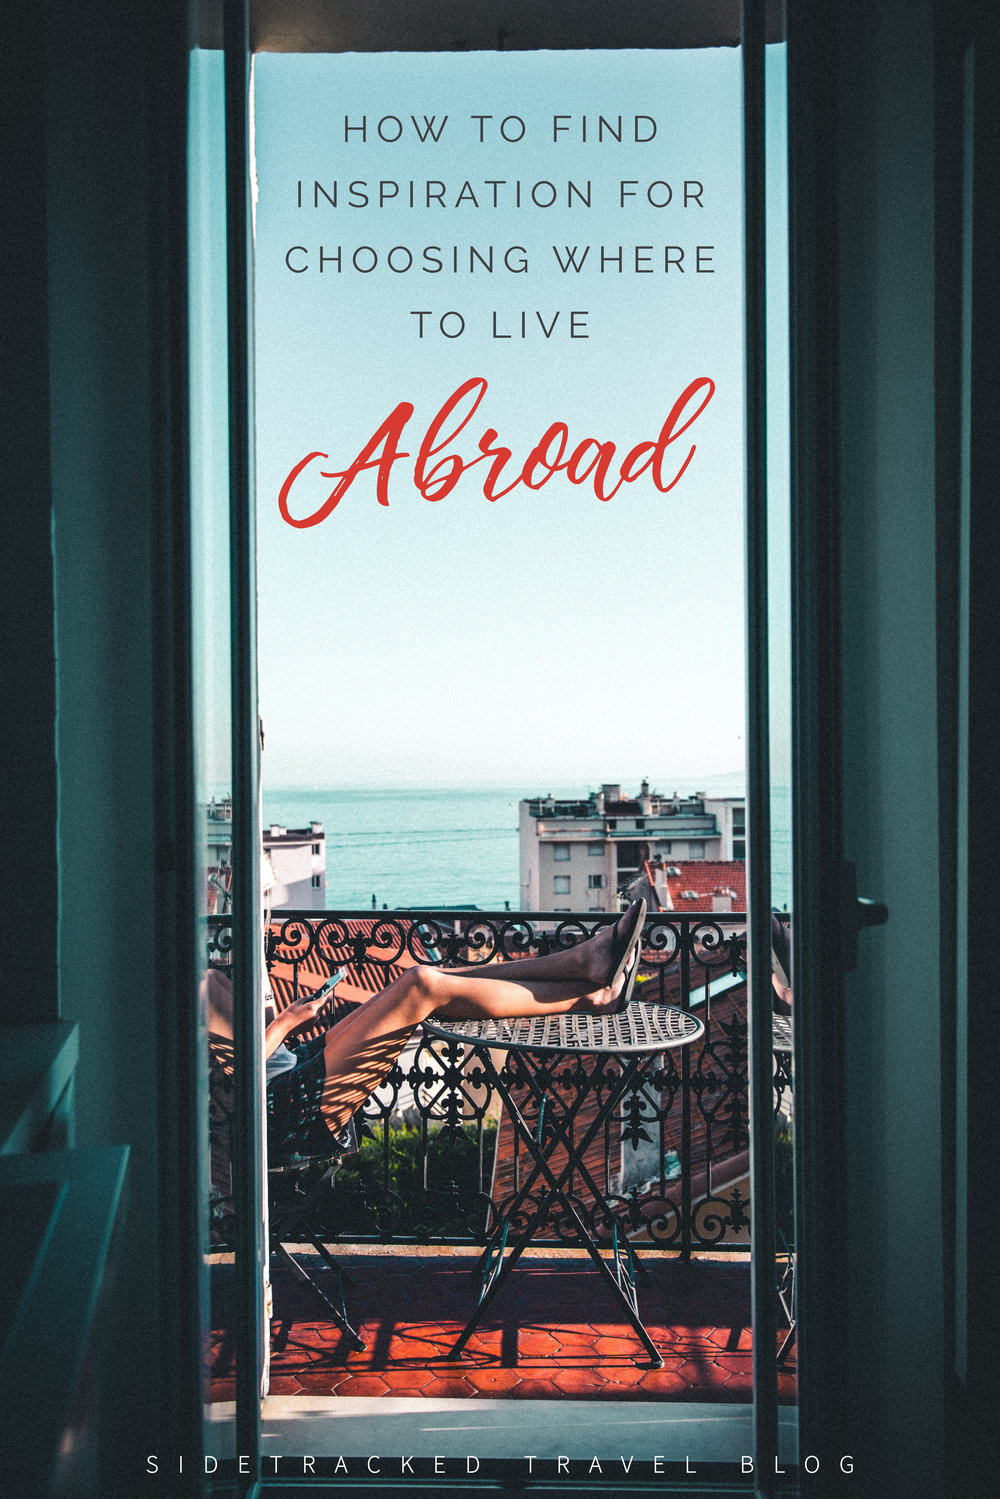 With so many incredible places that you could move to, how do you begin with figuring out where to live abroad? Here are some essential resources that will help you find inspiration.